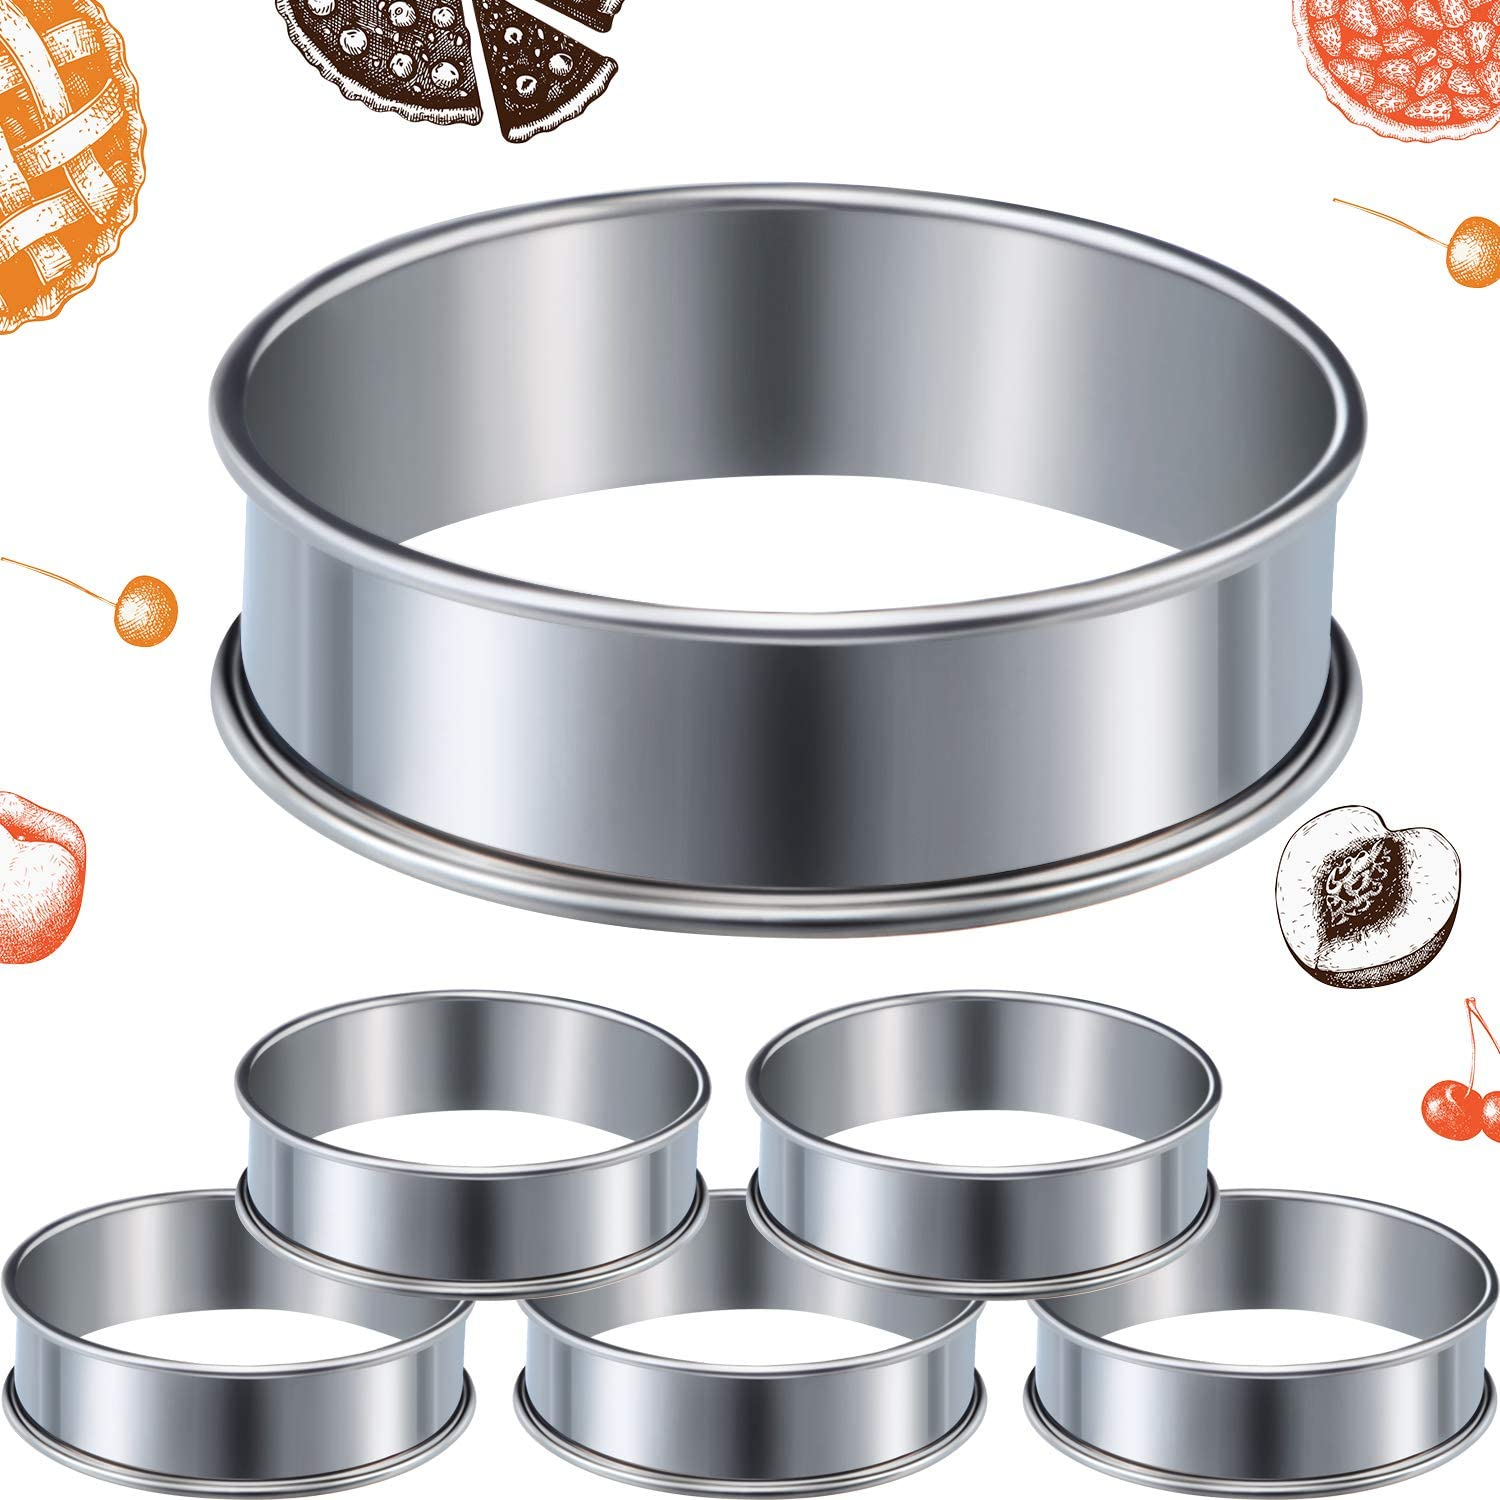 6 Pieces Muffin Tart Rings Double Rolled Tart Ring Stainless Steel Muffin Rings Metal Round Ring Mold for Home Food Making Tool, 3.15 Inch